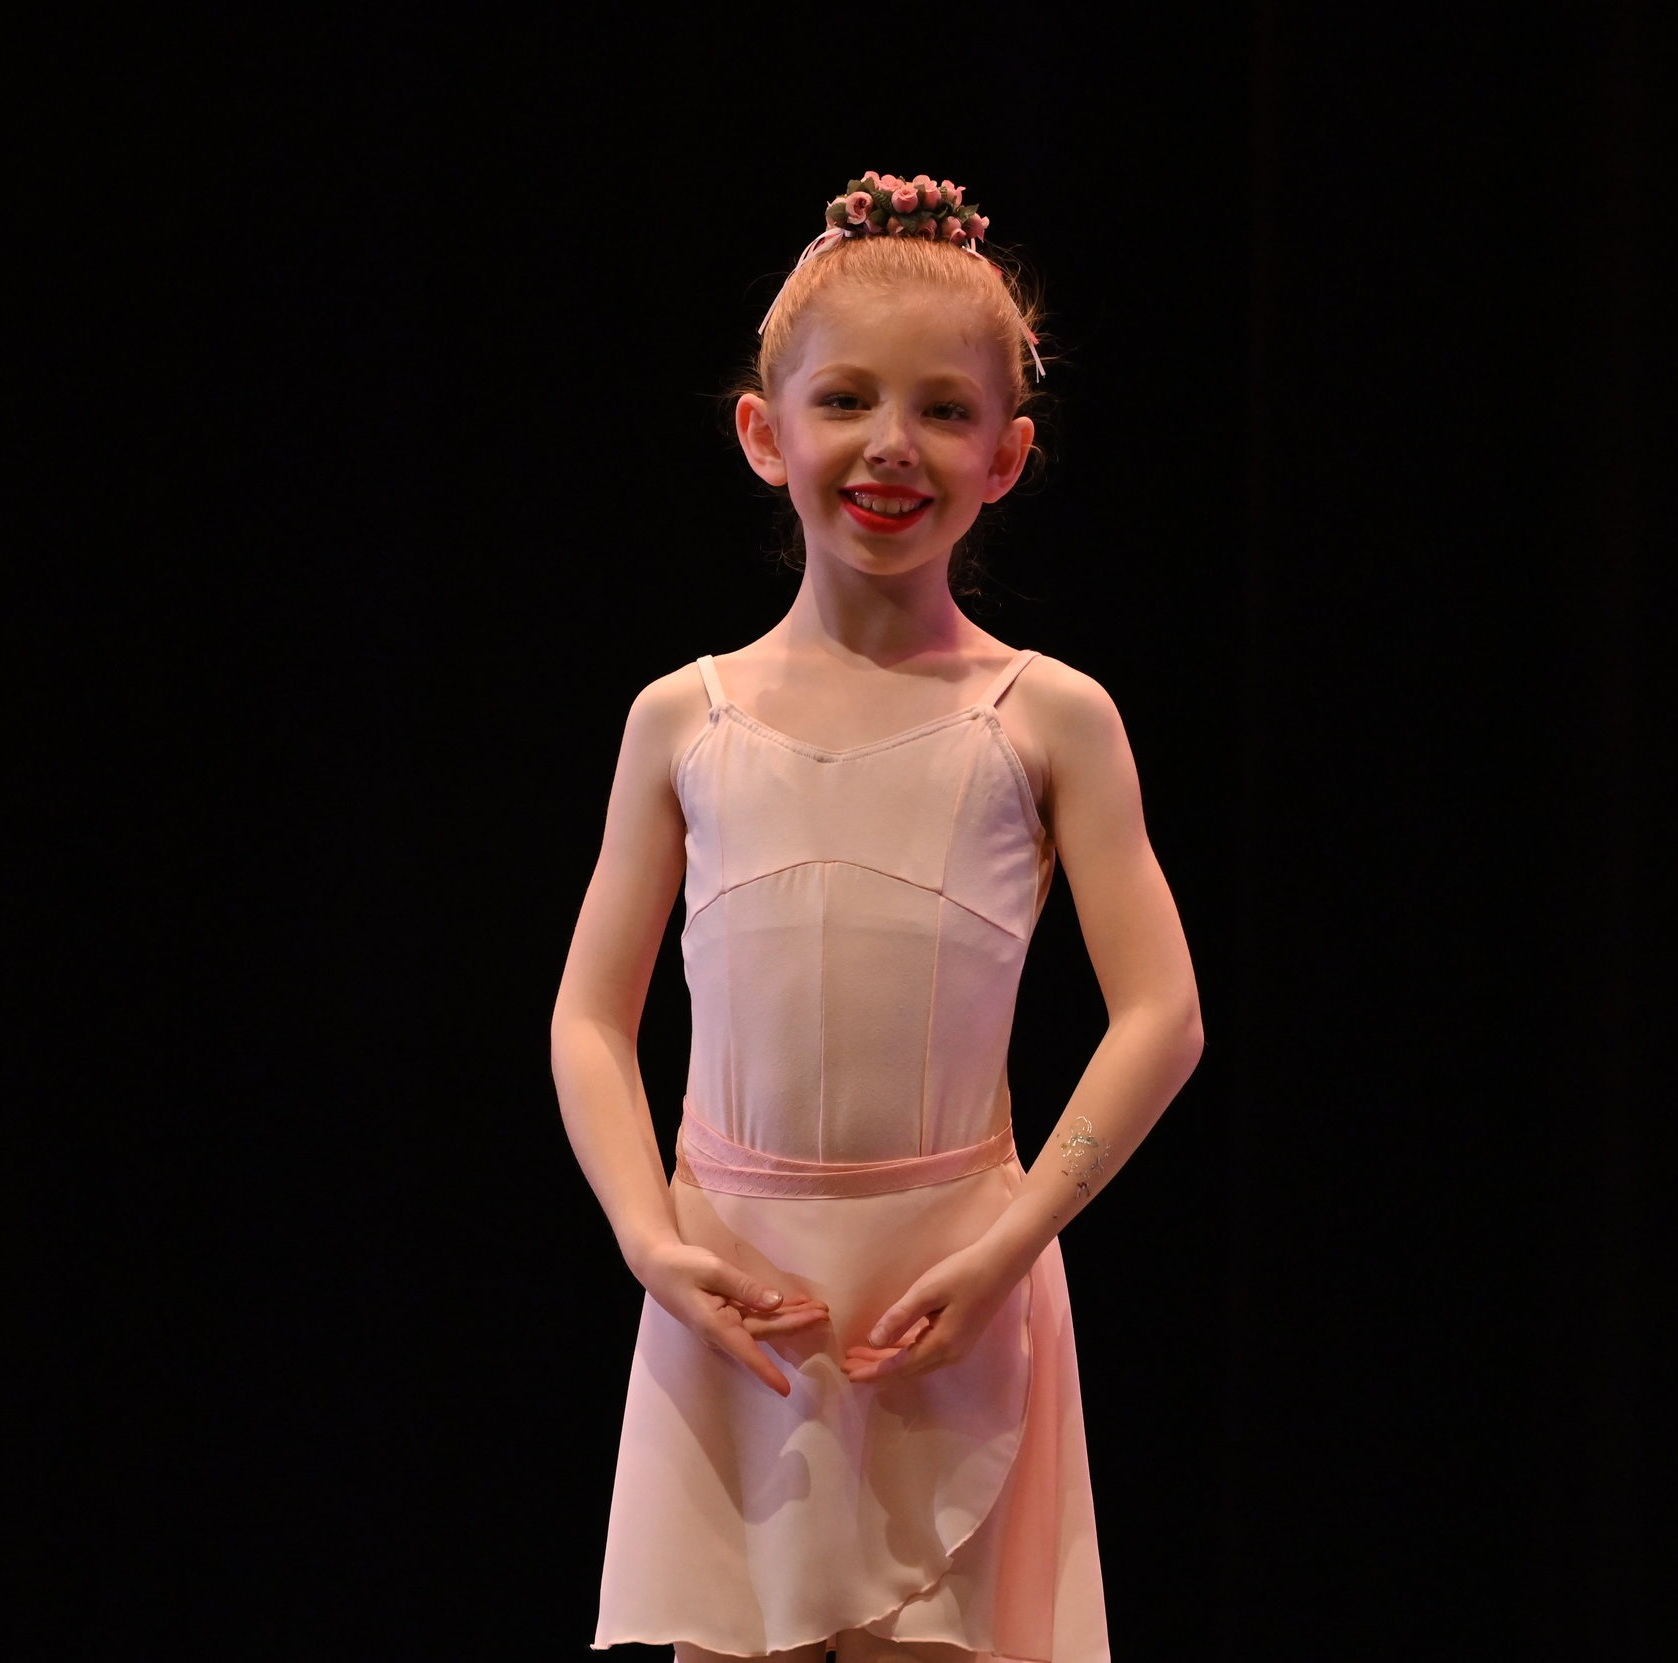 BBT Youth Division dancer  in Liz Farotte Heenan's  Little Briar Rose,  photography by Natalia Perez